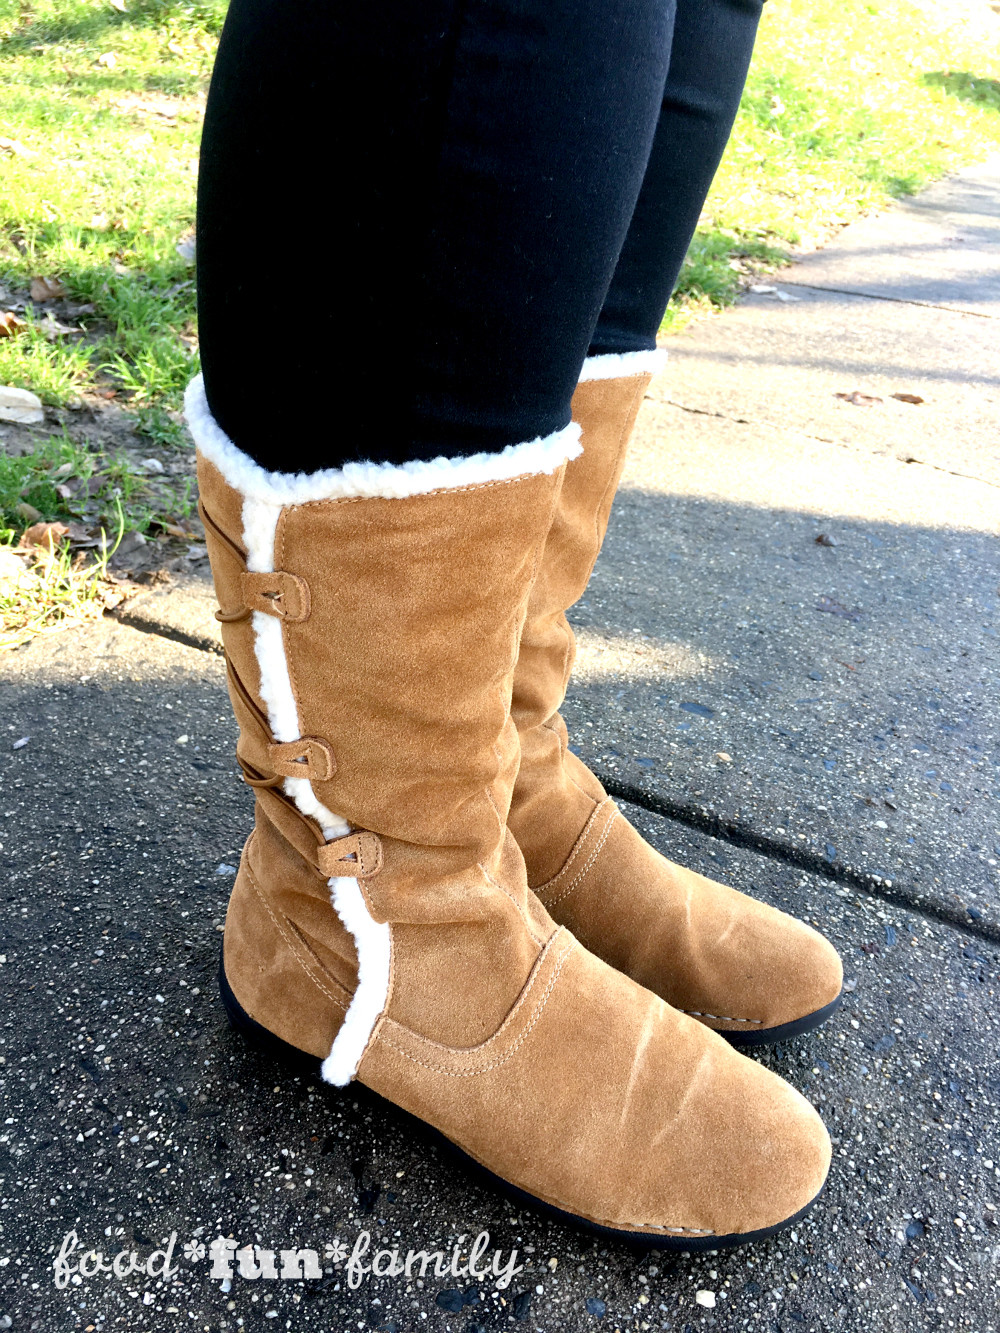 Comfortable Shoes for Travel Aerosoles boots at Food Fun Family